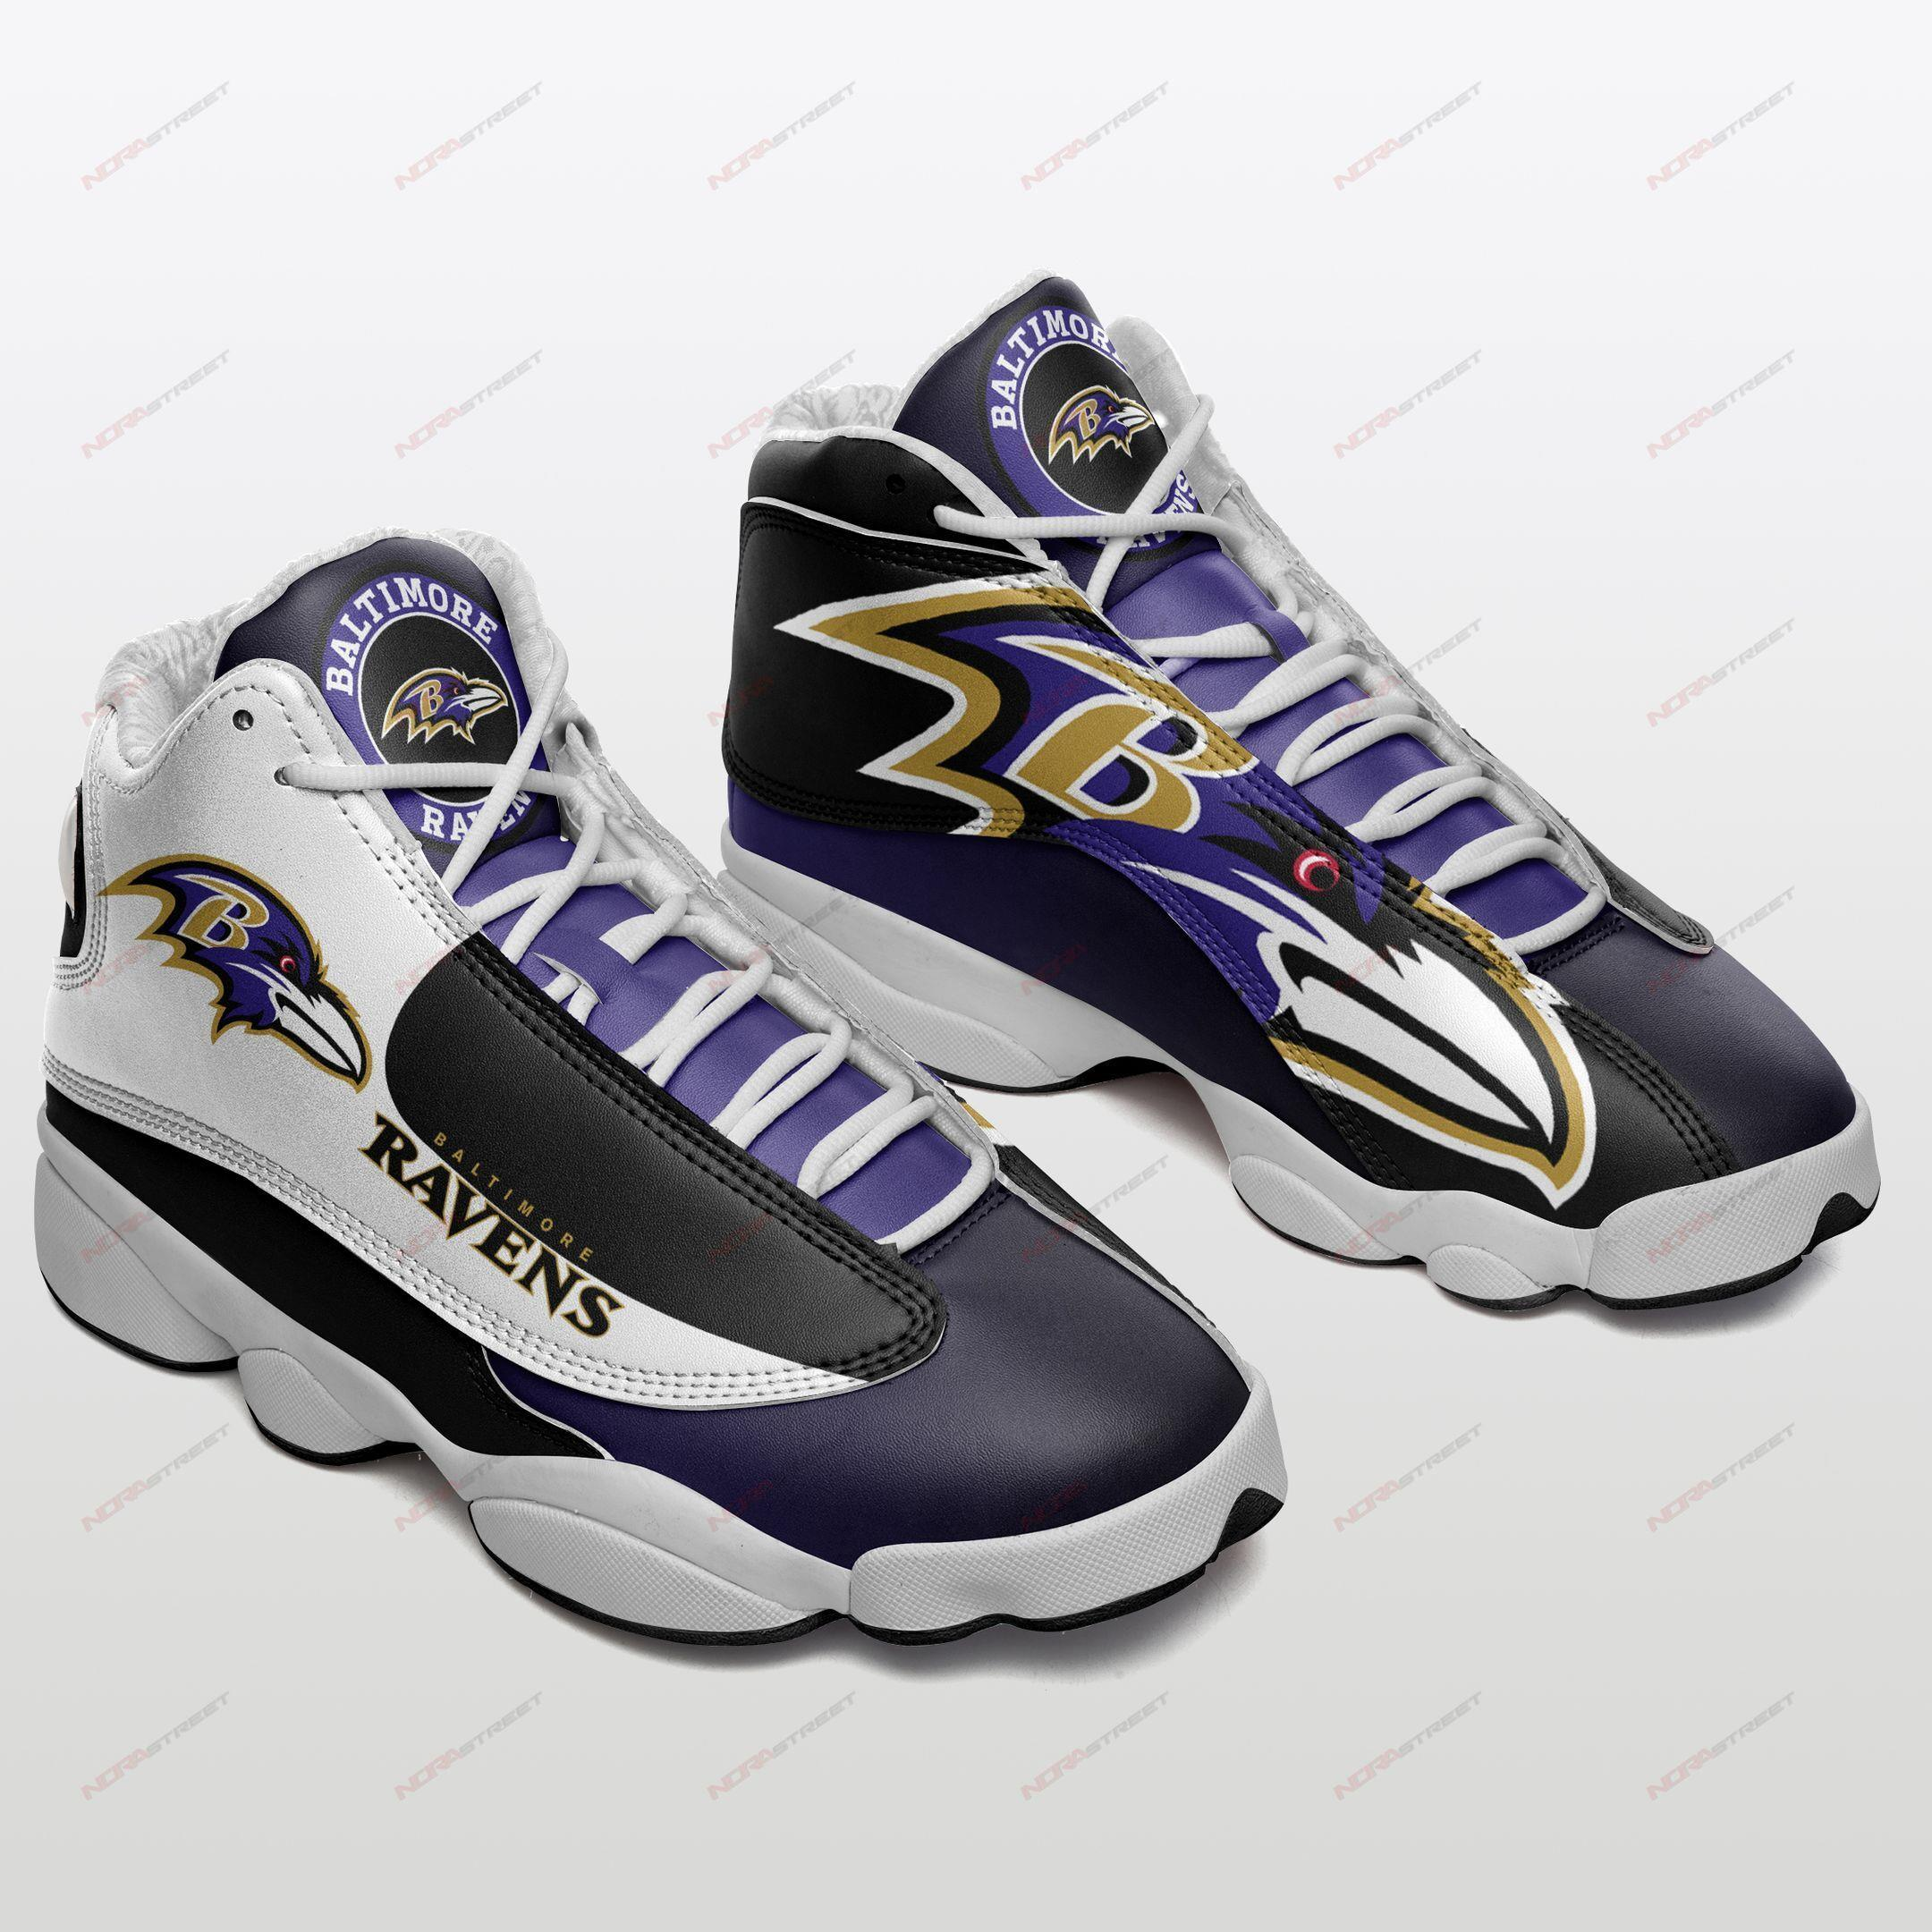 Baltimore Ravens Air Jordan 13 Sneakers Sport Shoes Plus Size